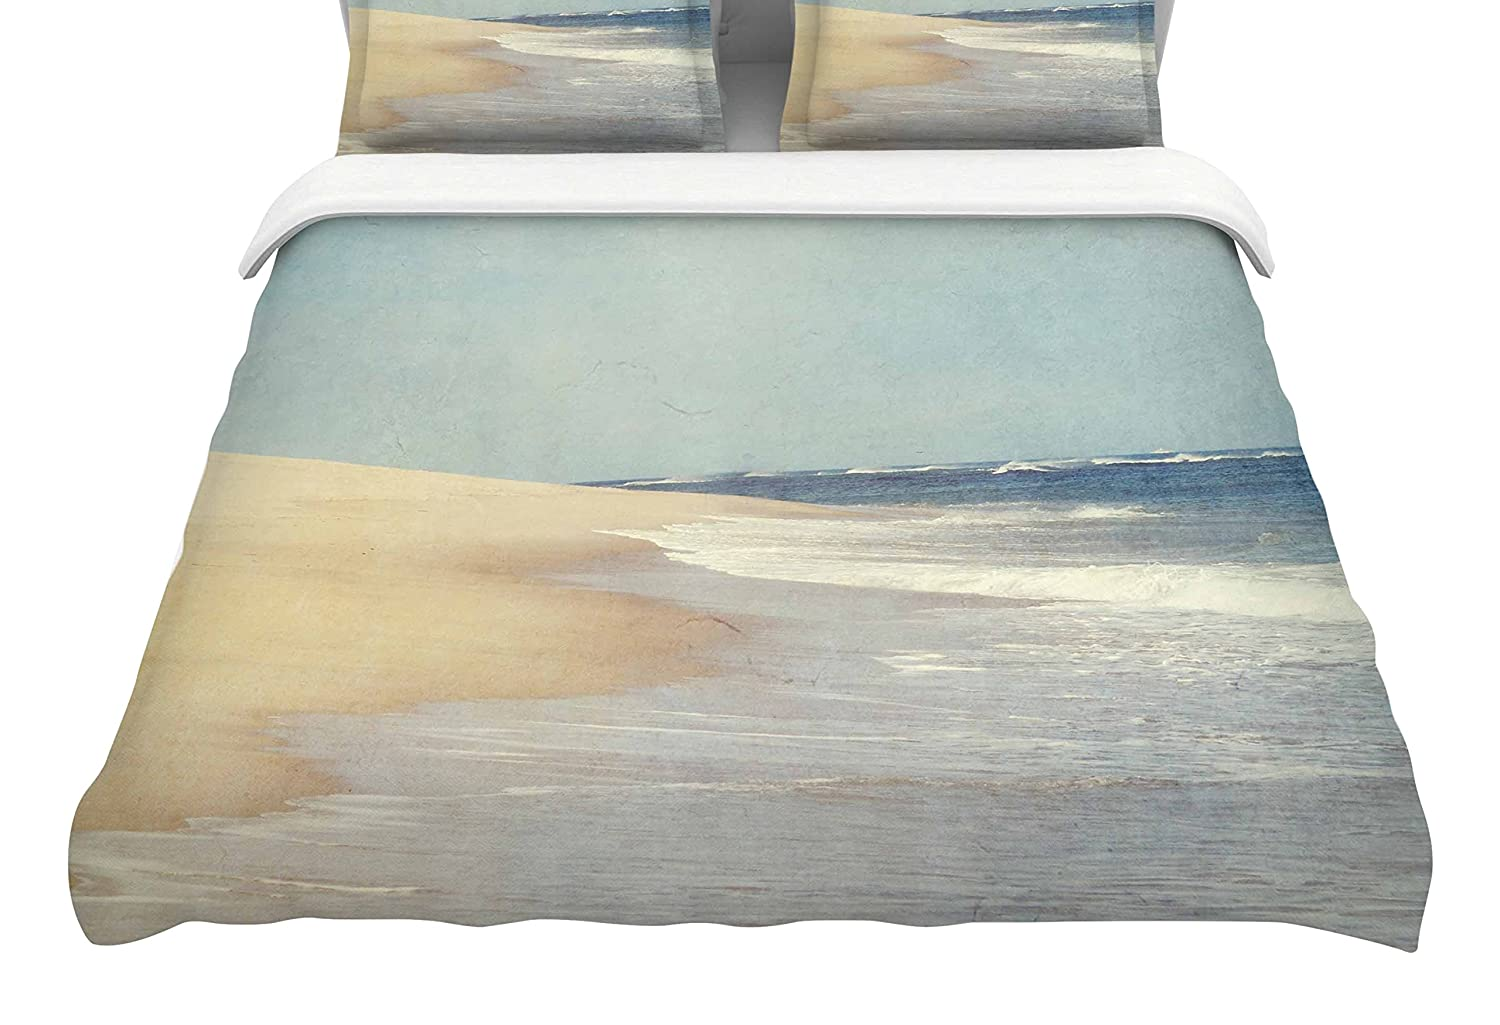 Kess InHouse Chelsea Victoria The Cape Featherweight Queen Duvet Cover 88 x 88,